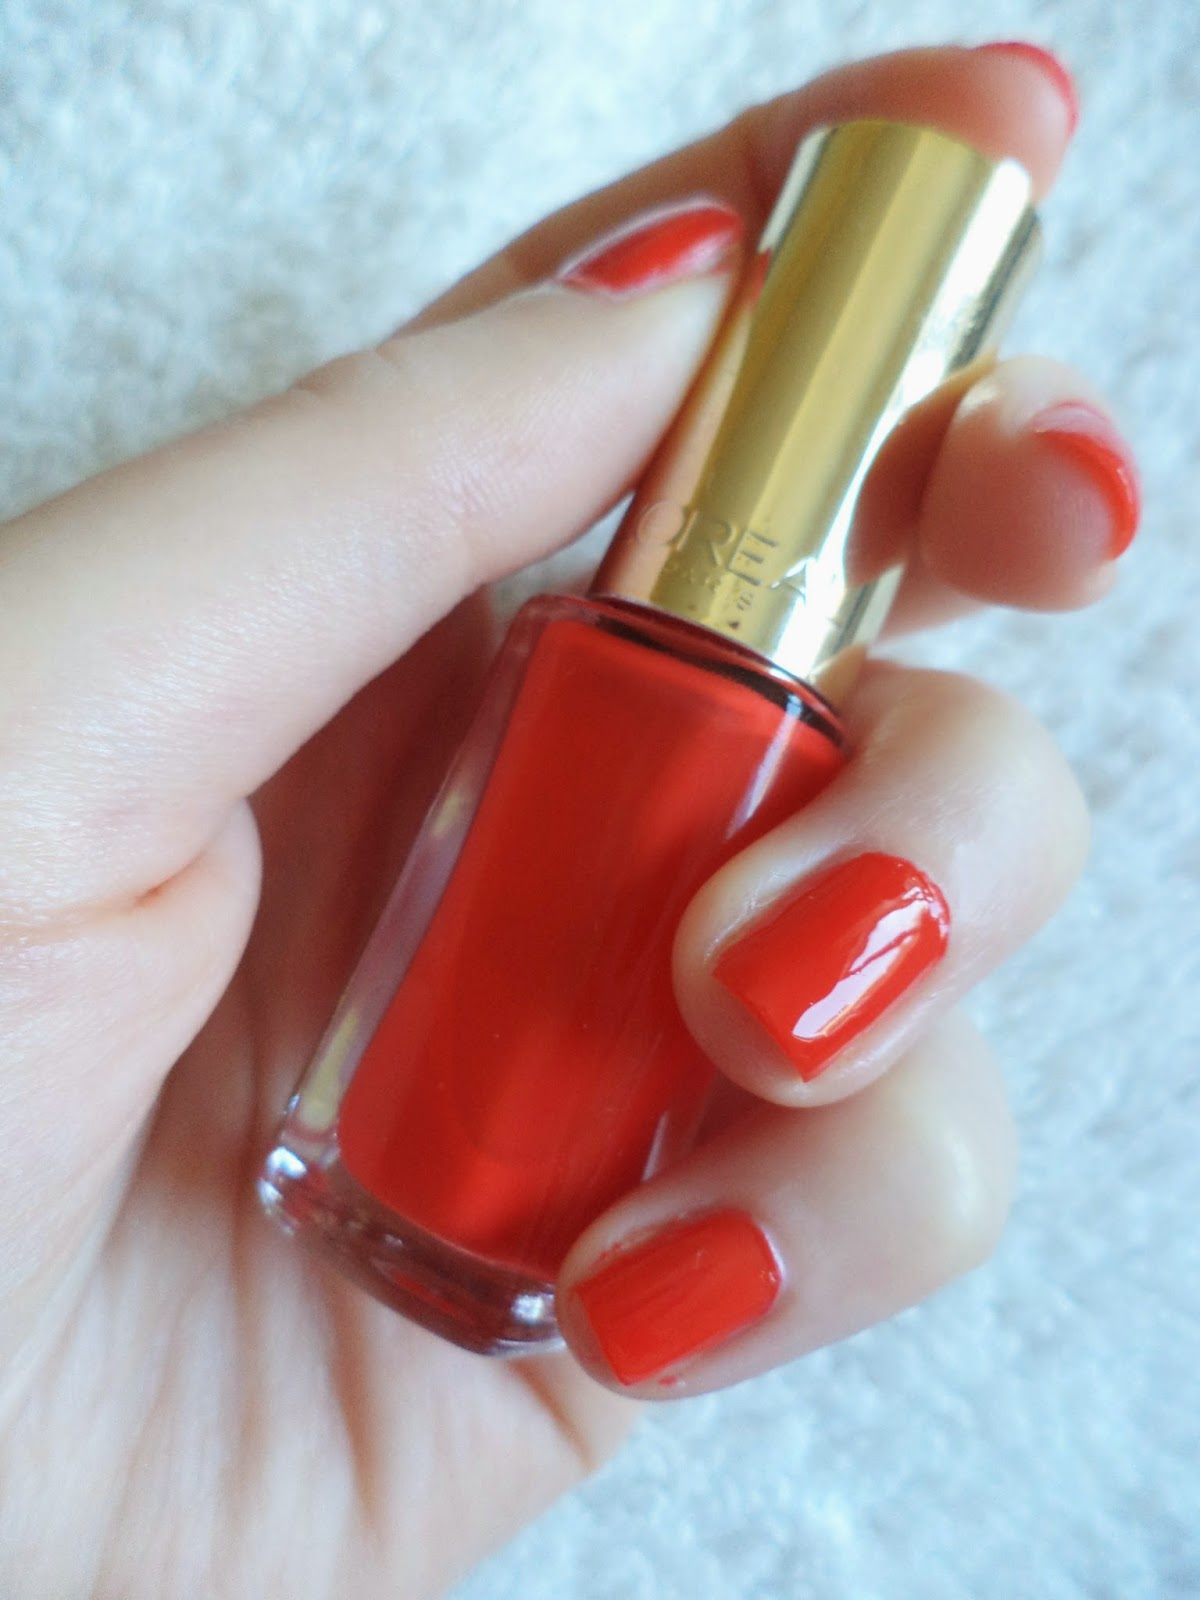 Emma & The Beauty Blog: L\'Oreal Color Riche Nail Polish in Spicy Orange